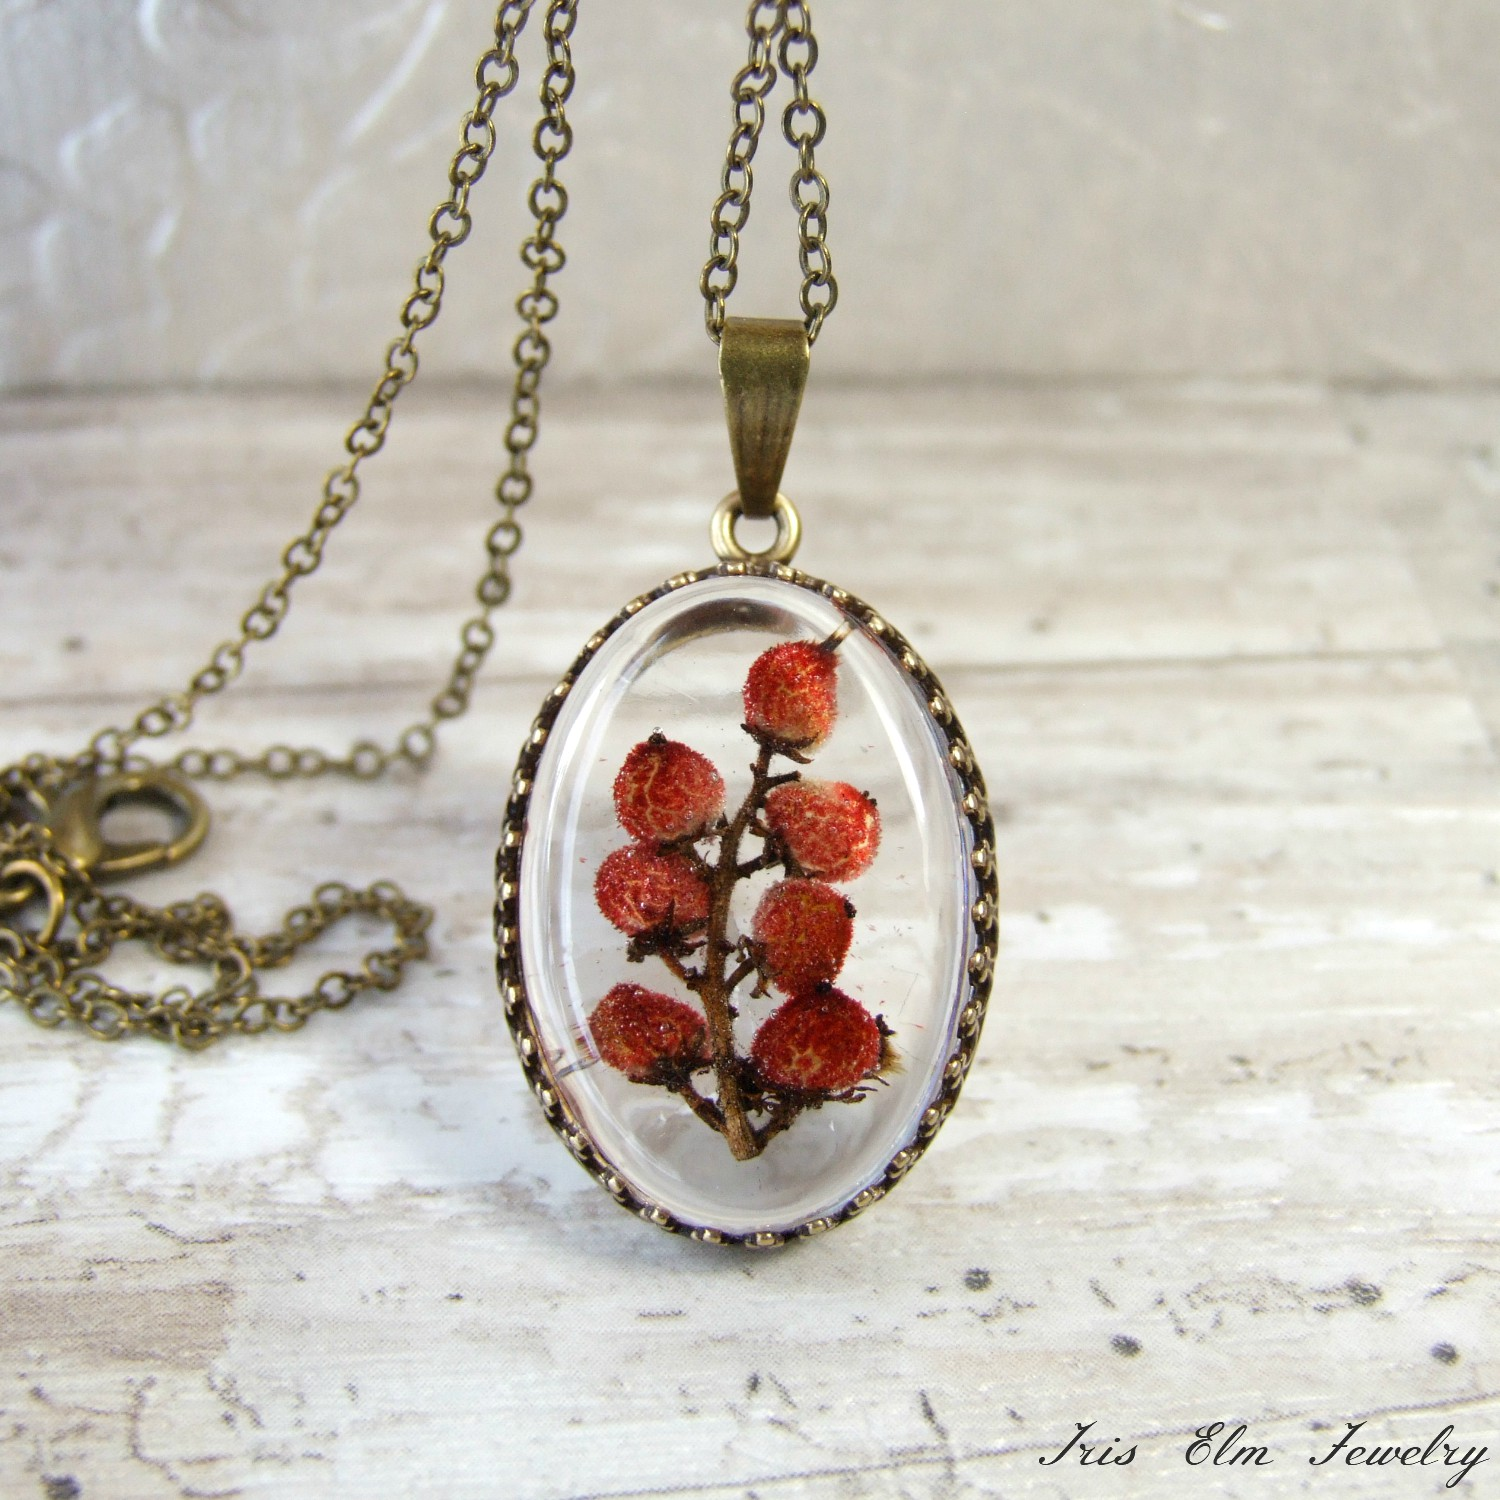 红Sumac Berries Resin Pendant Necklace